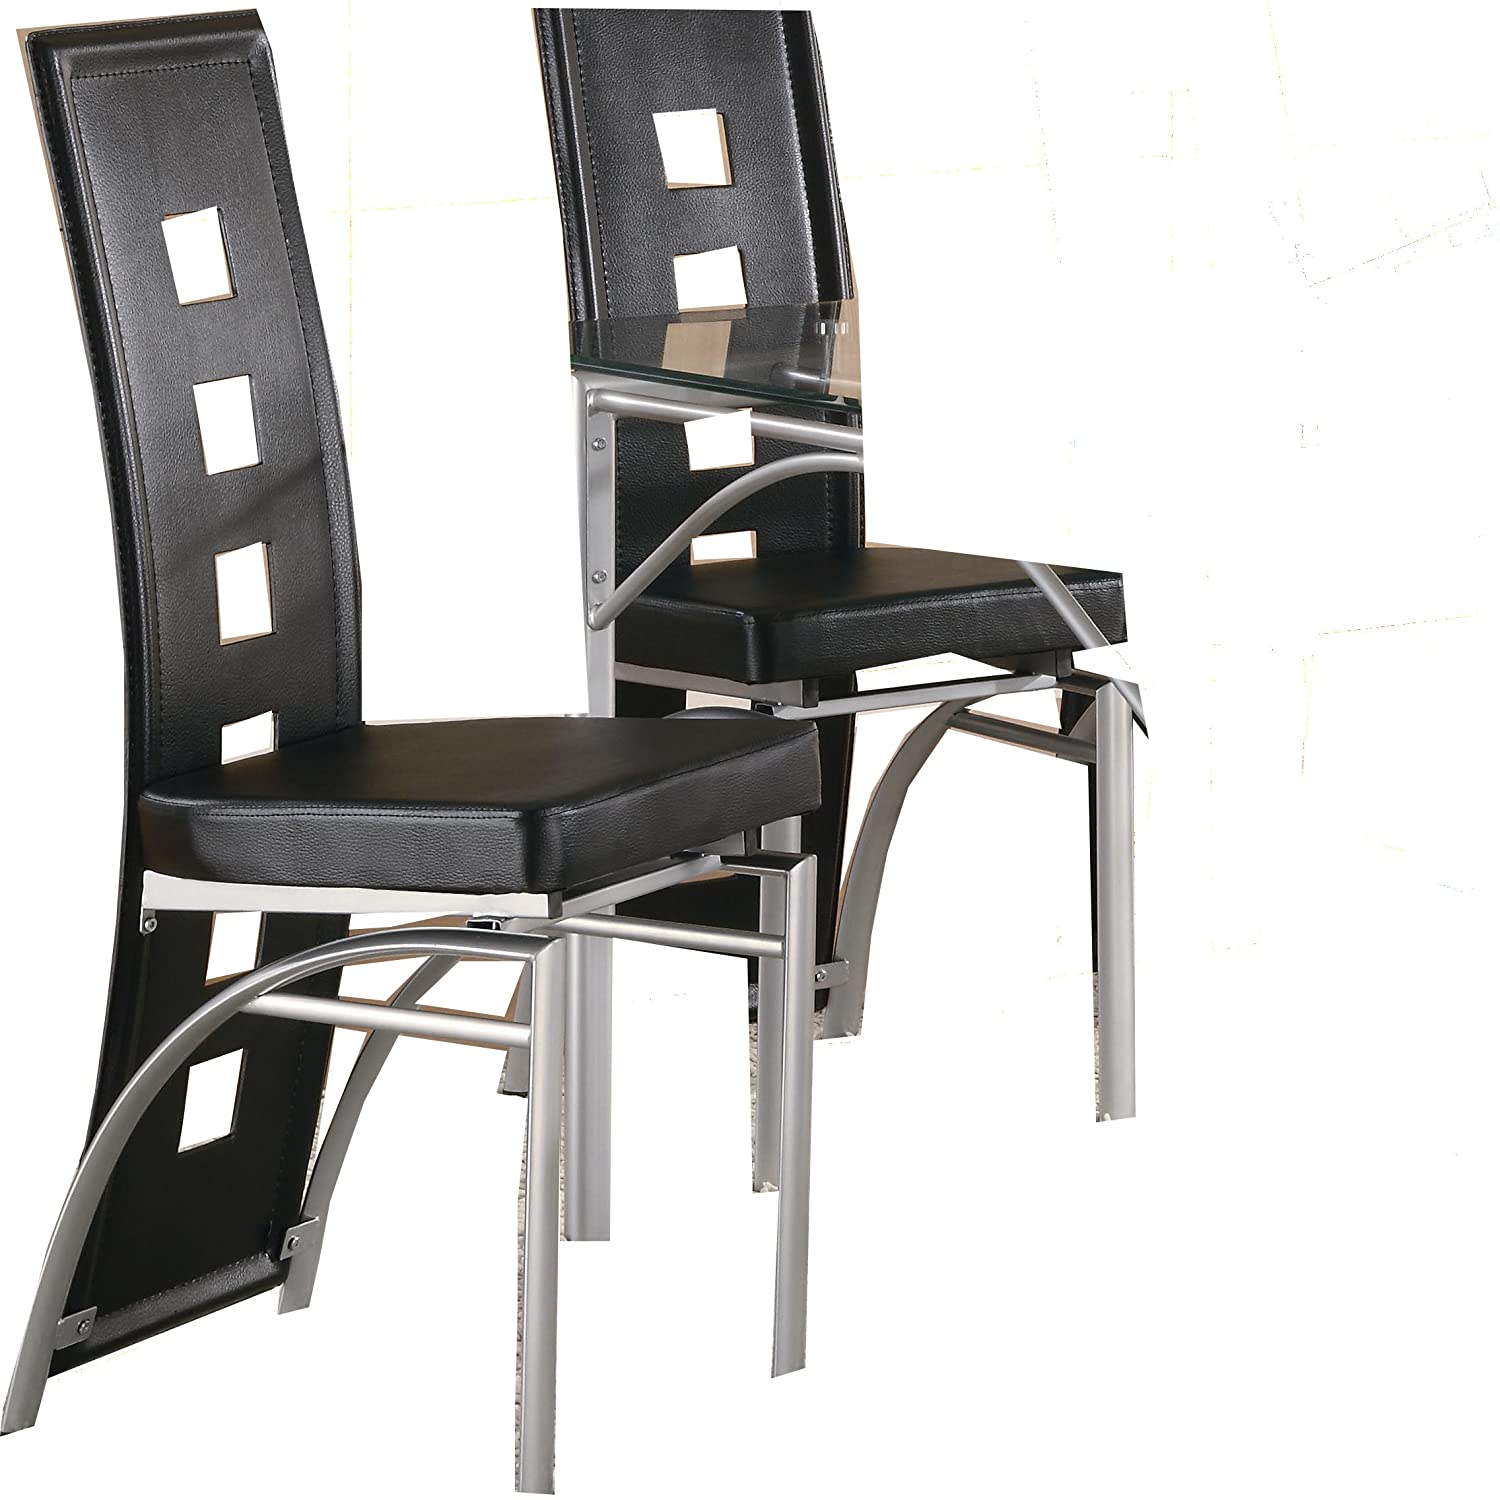 furnishings contemporary dining chair silver black set of 2 new ebay